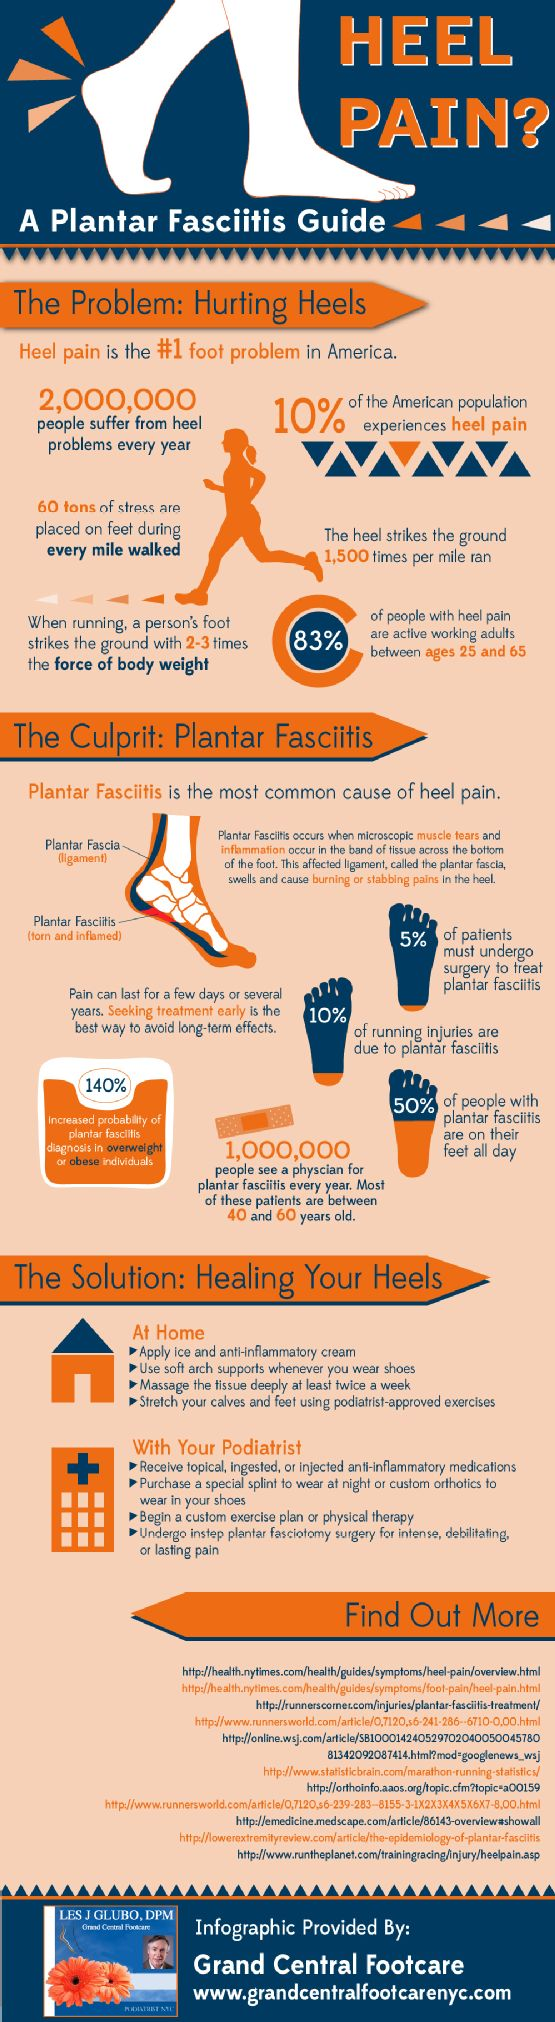 We rely on our feet every day to get us where we need to go. For people who experience foot pain, even everyday tasks like running errands or standing